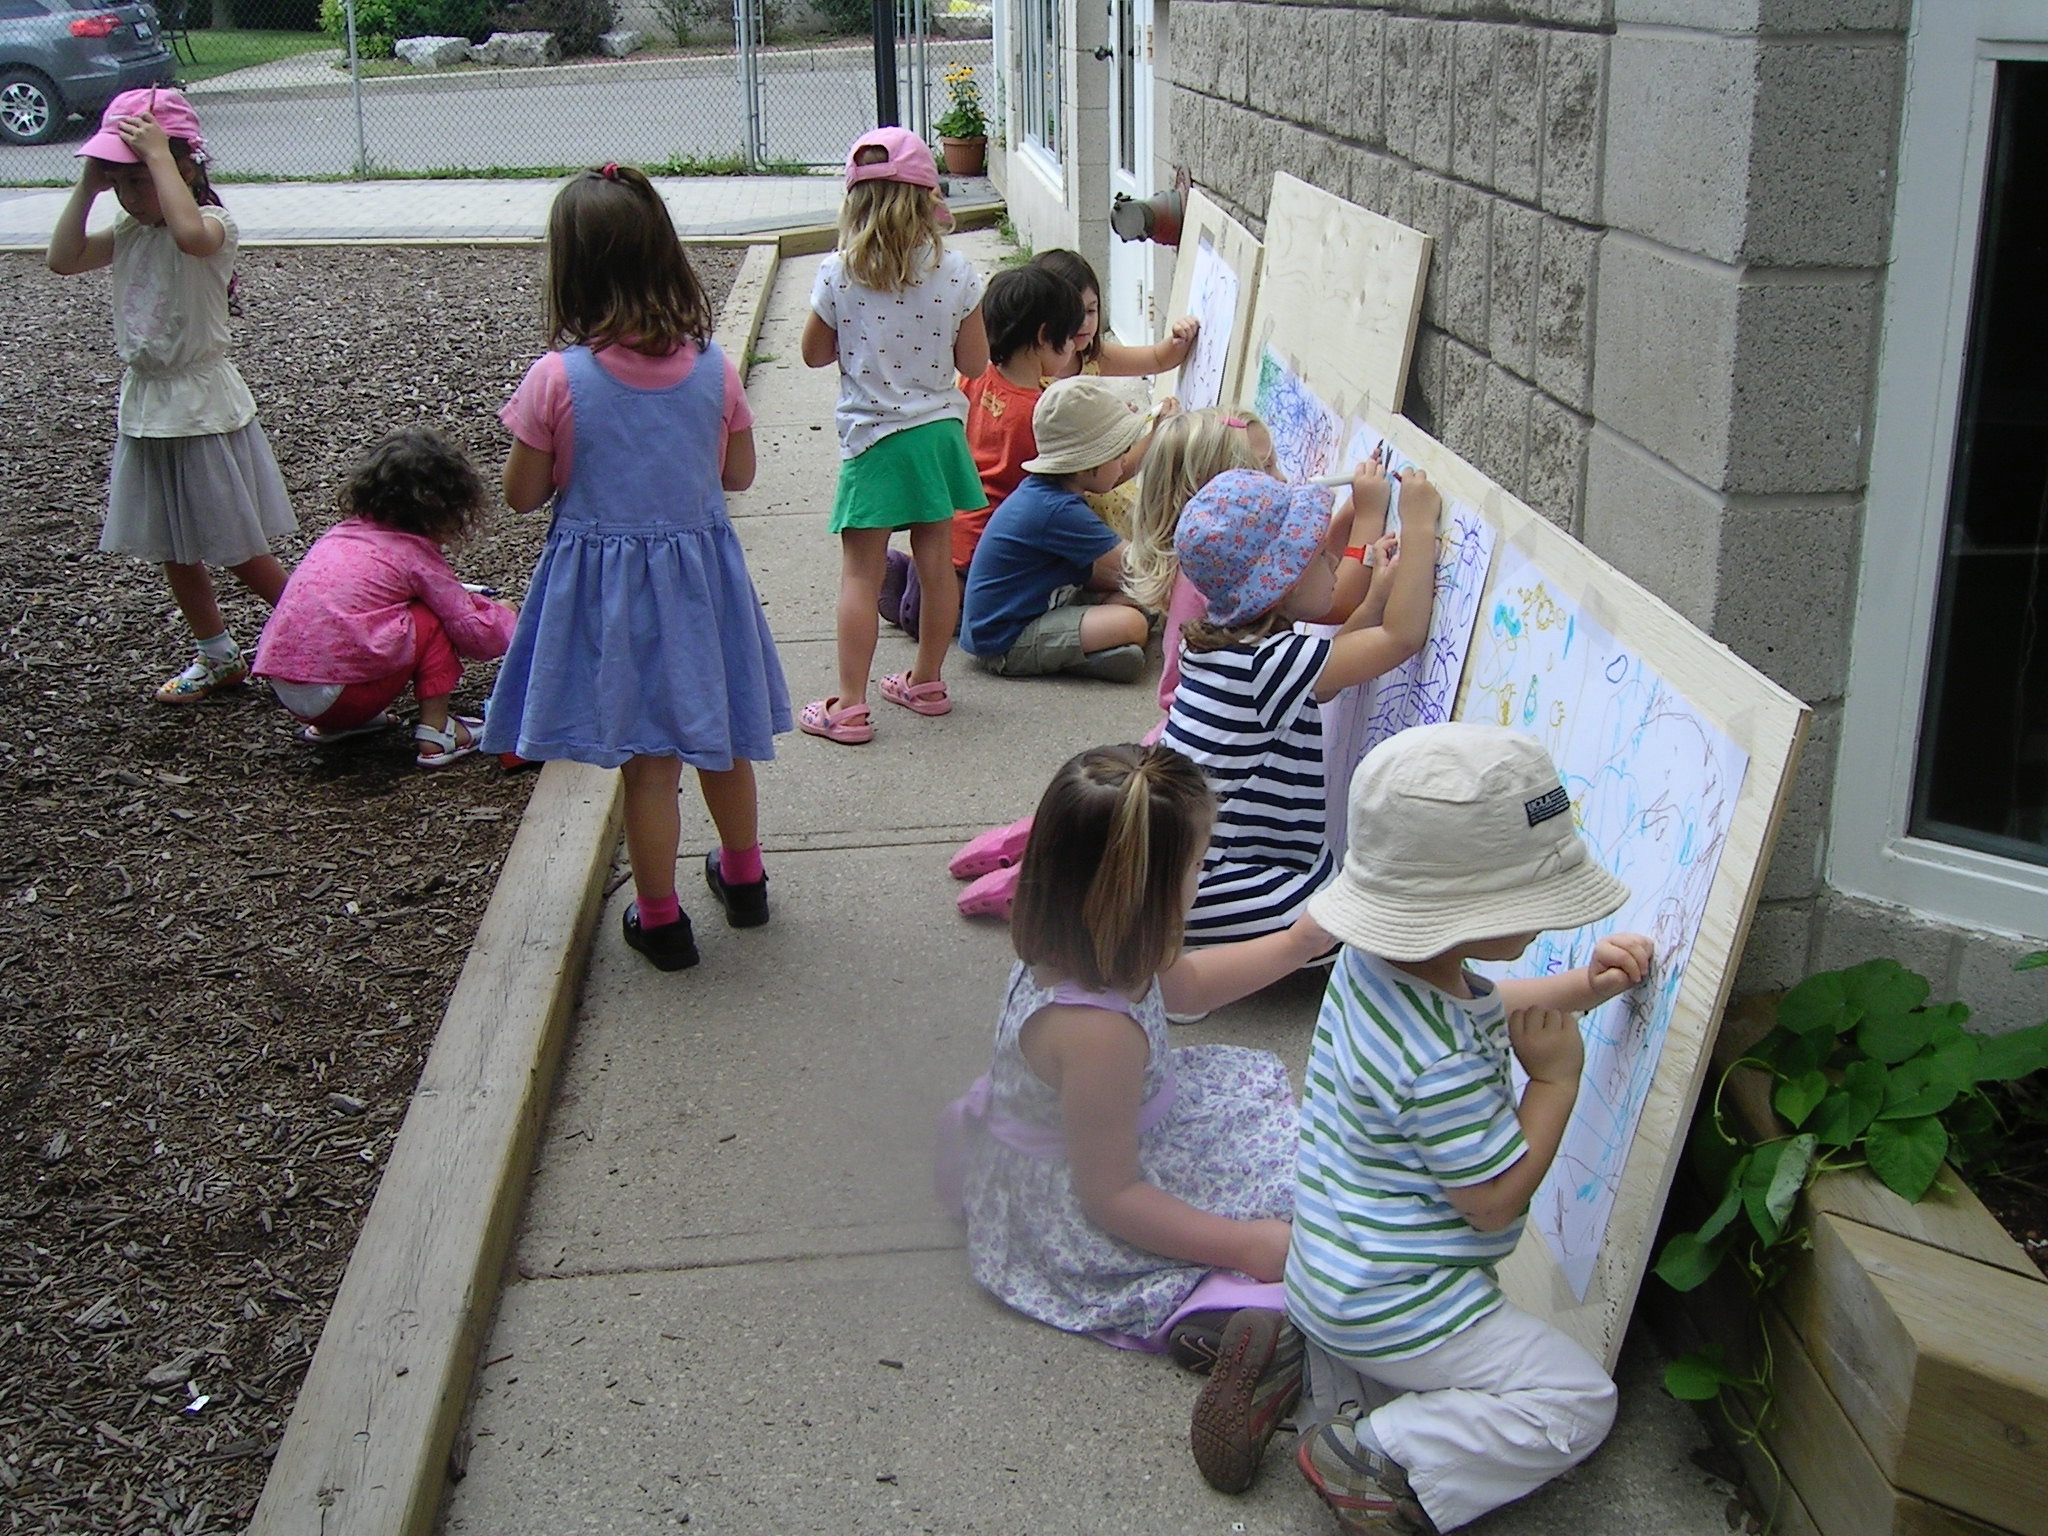 Children doing outdoor projects with markers and boards at Kaban Montessori in Mississauga.